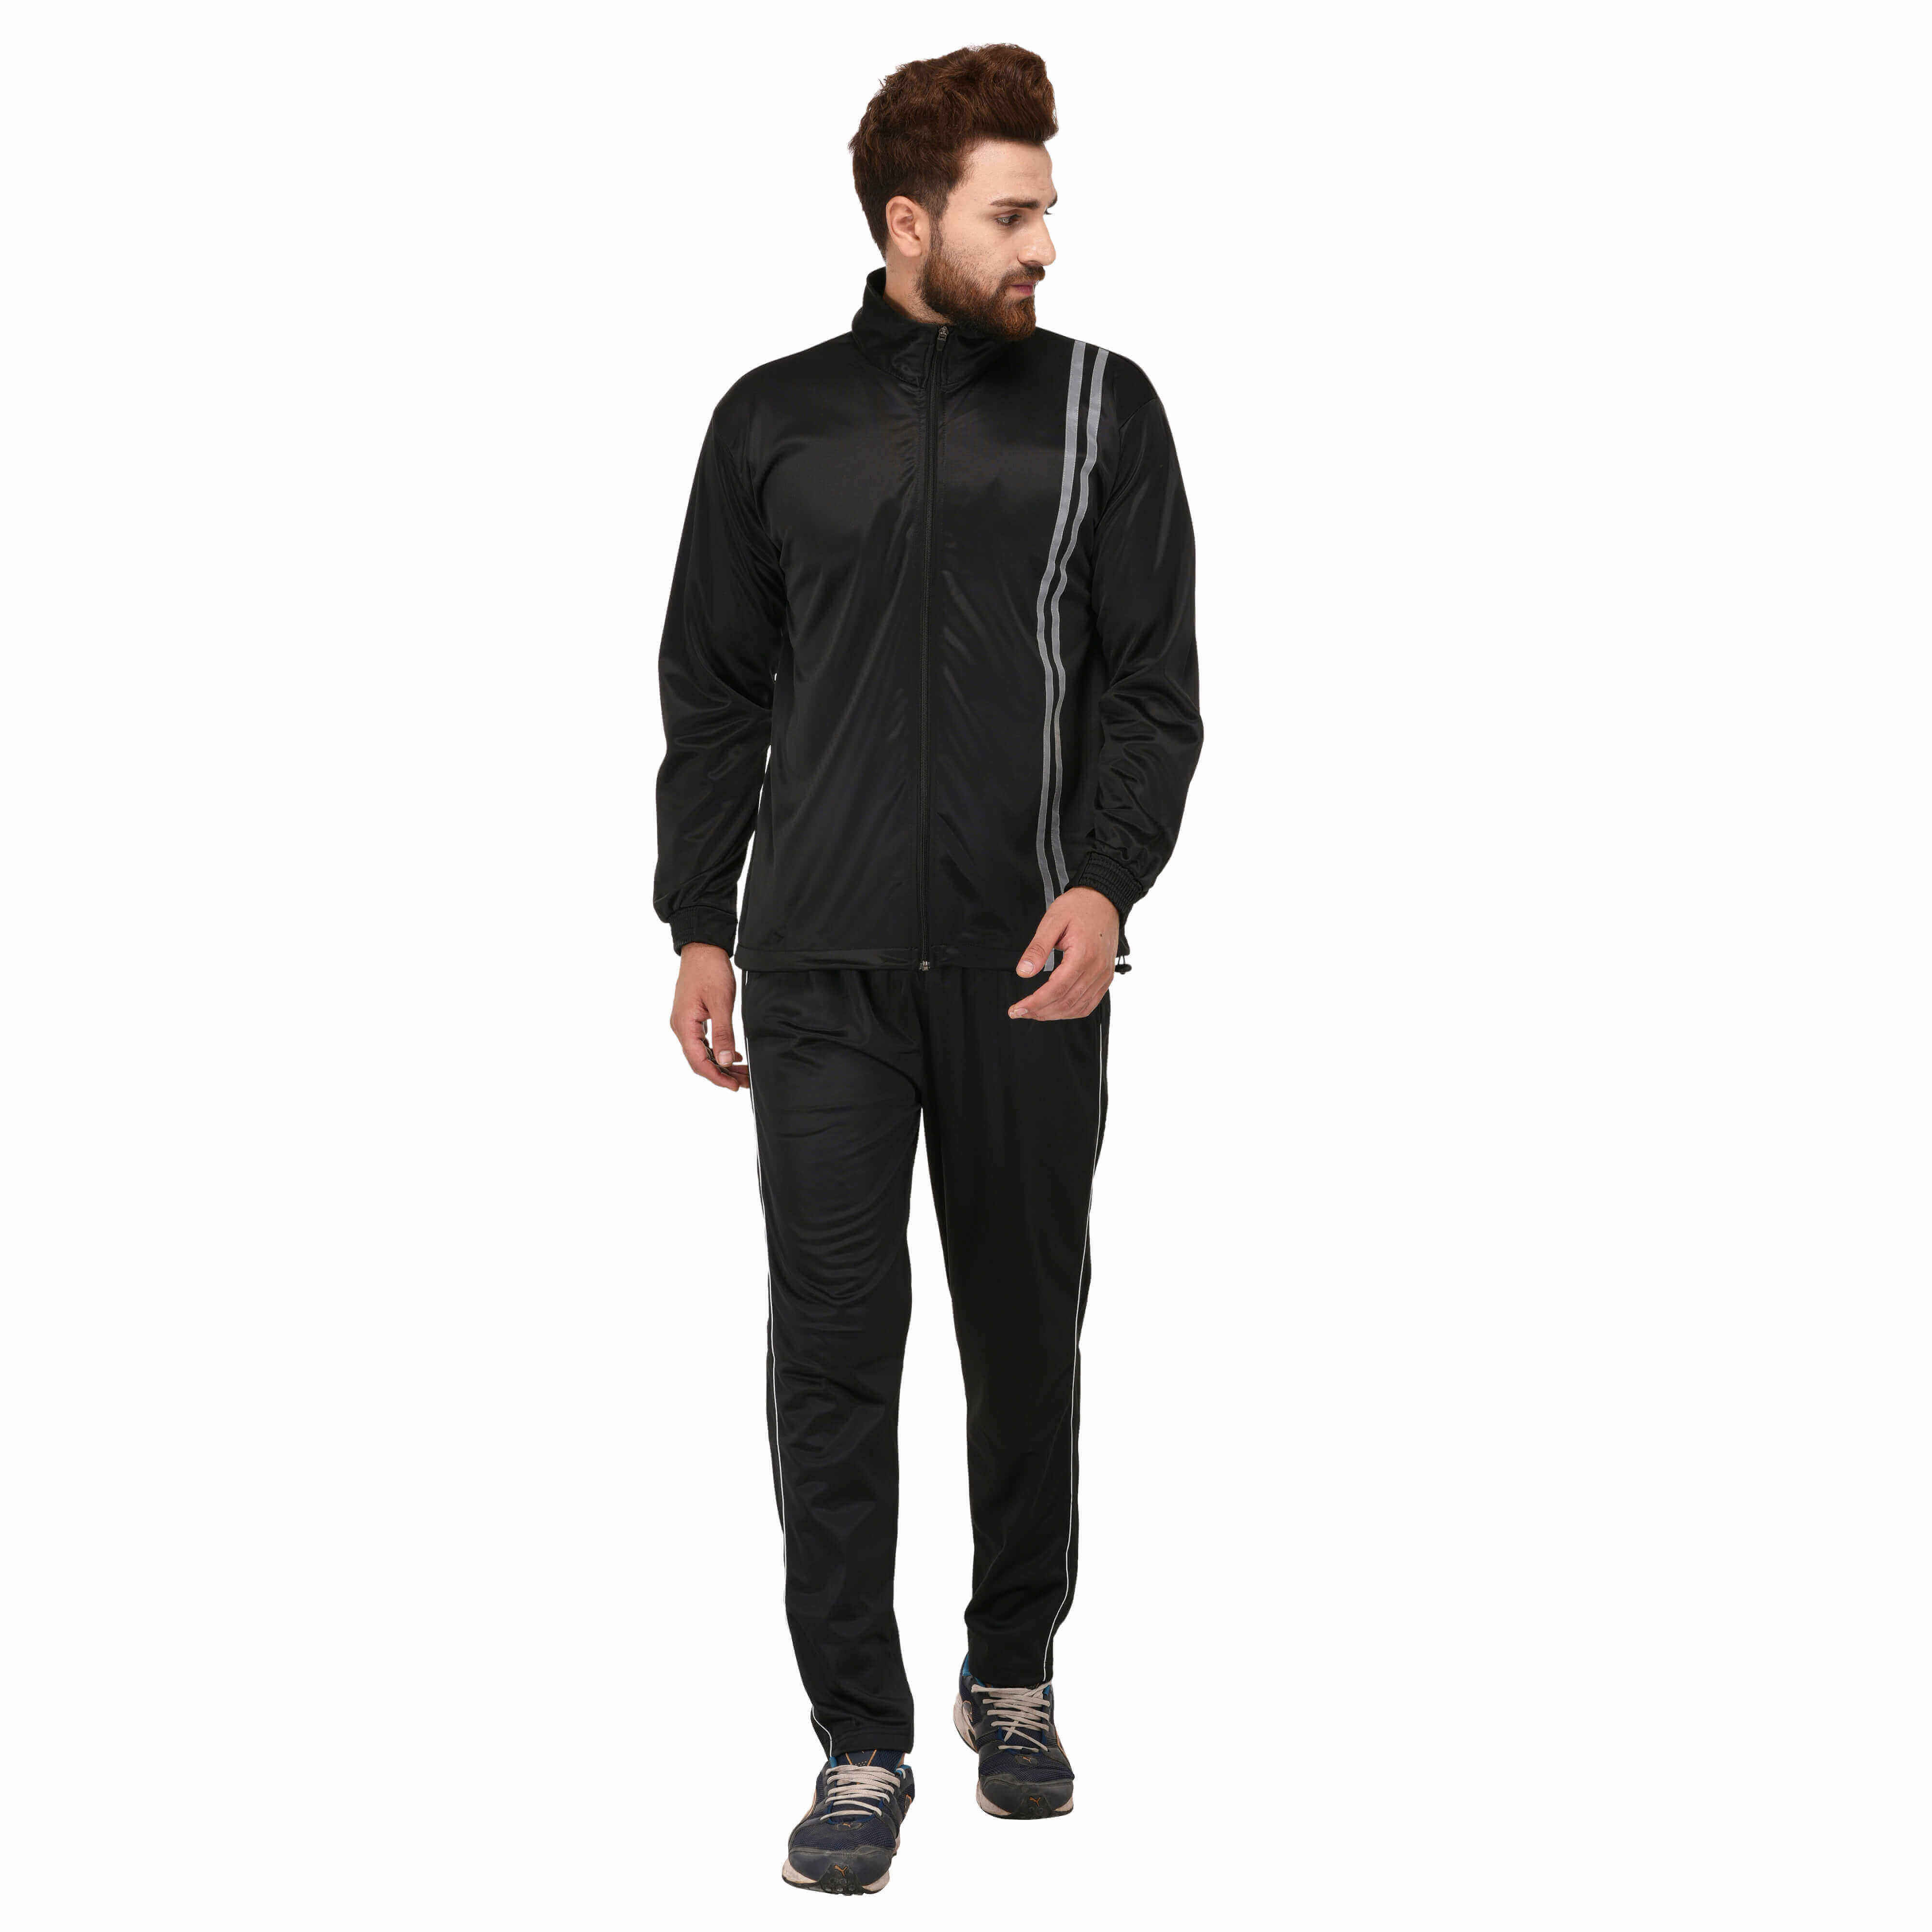 Mens Tracksuit Set Manufacturers in Thiruvananthapuram